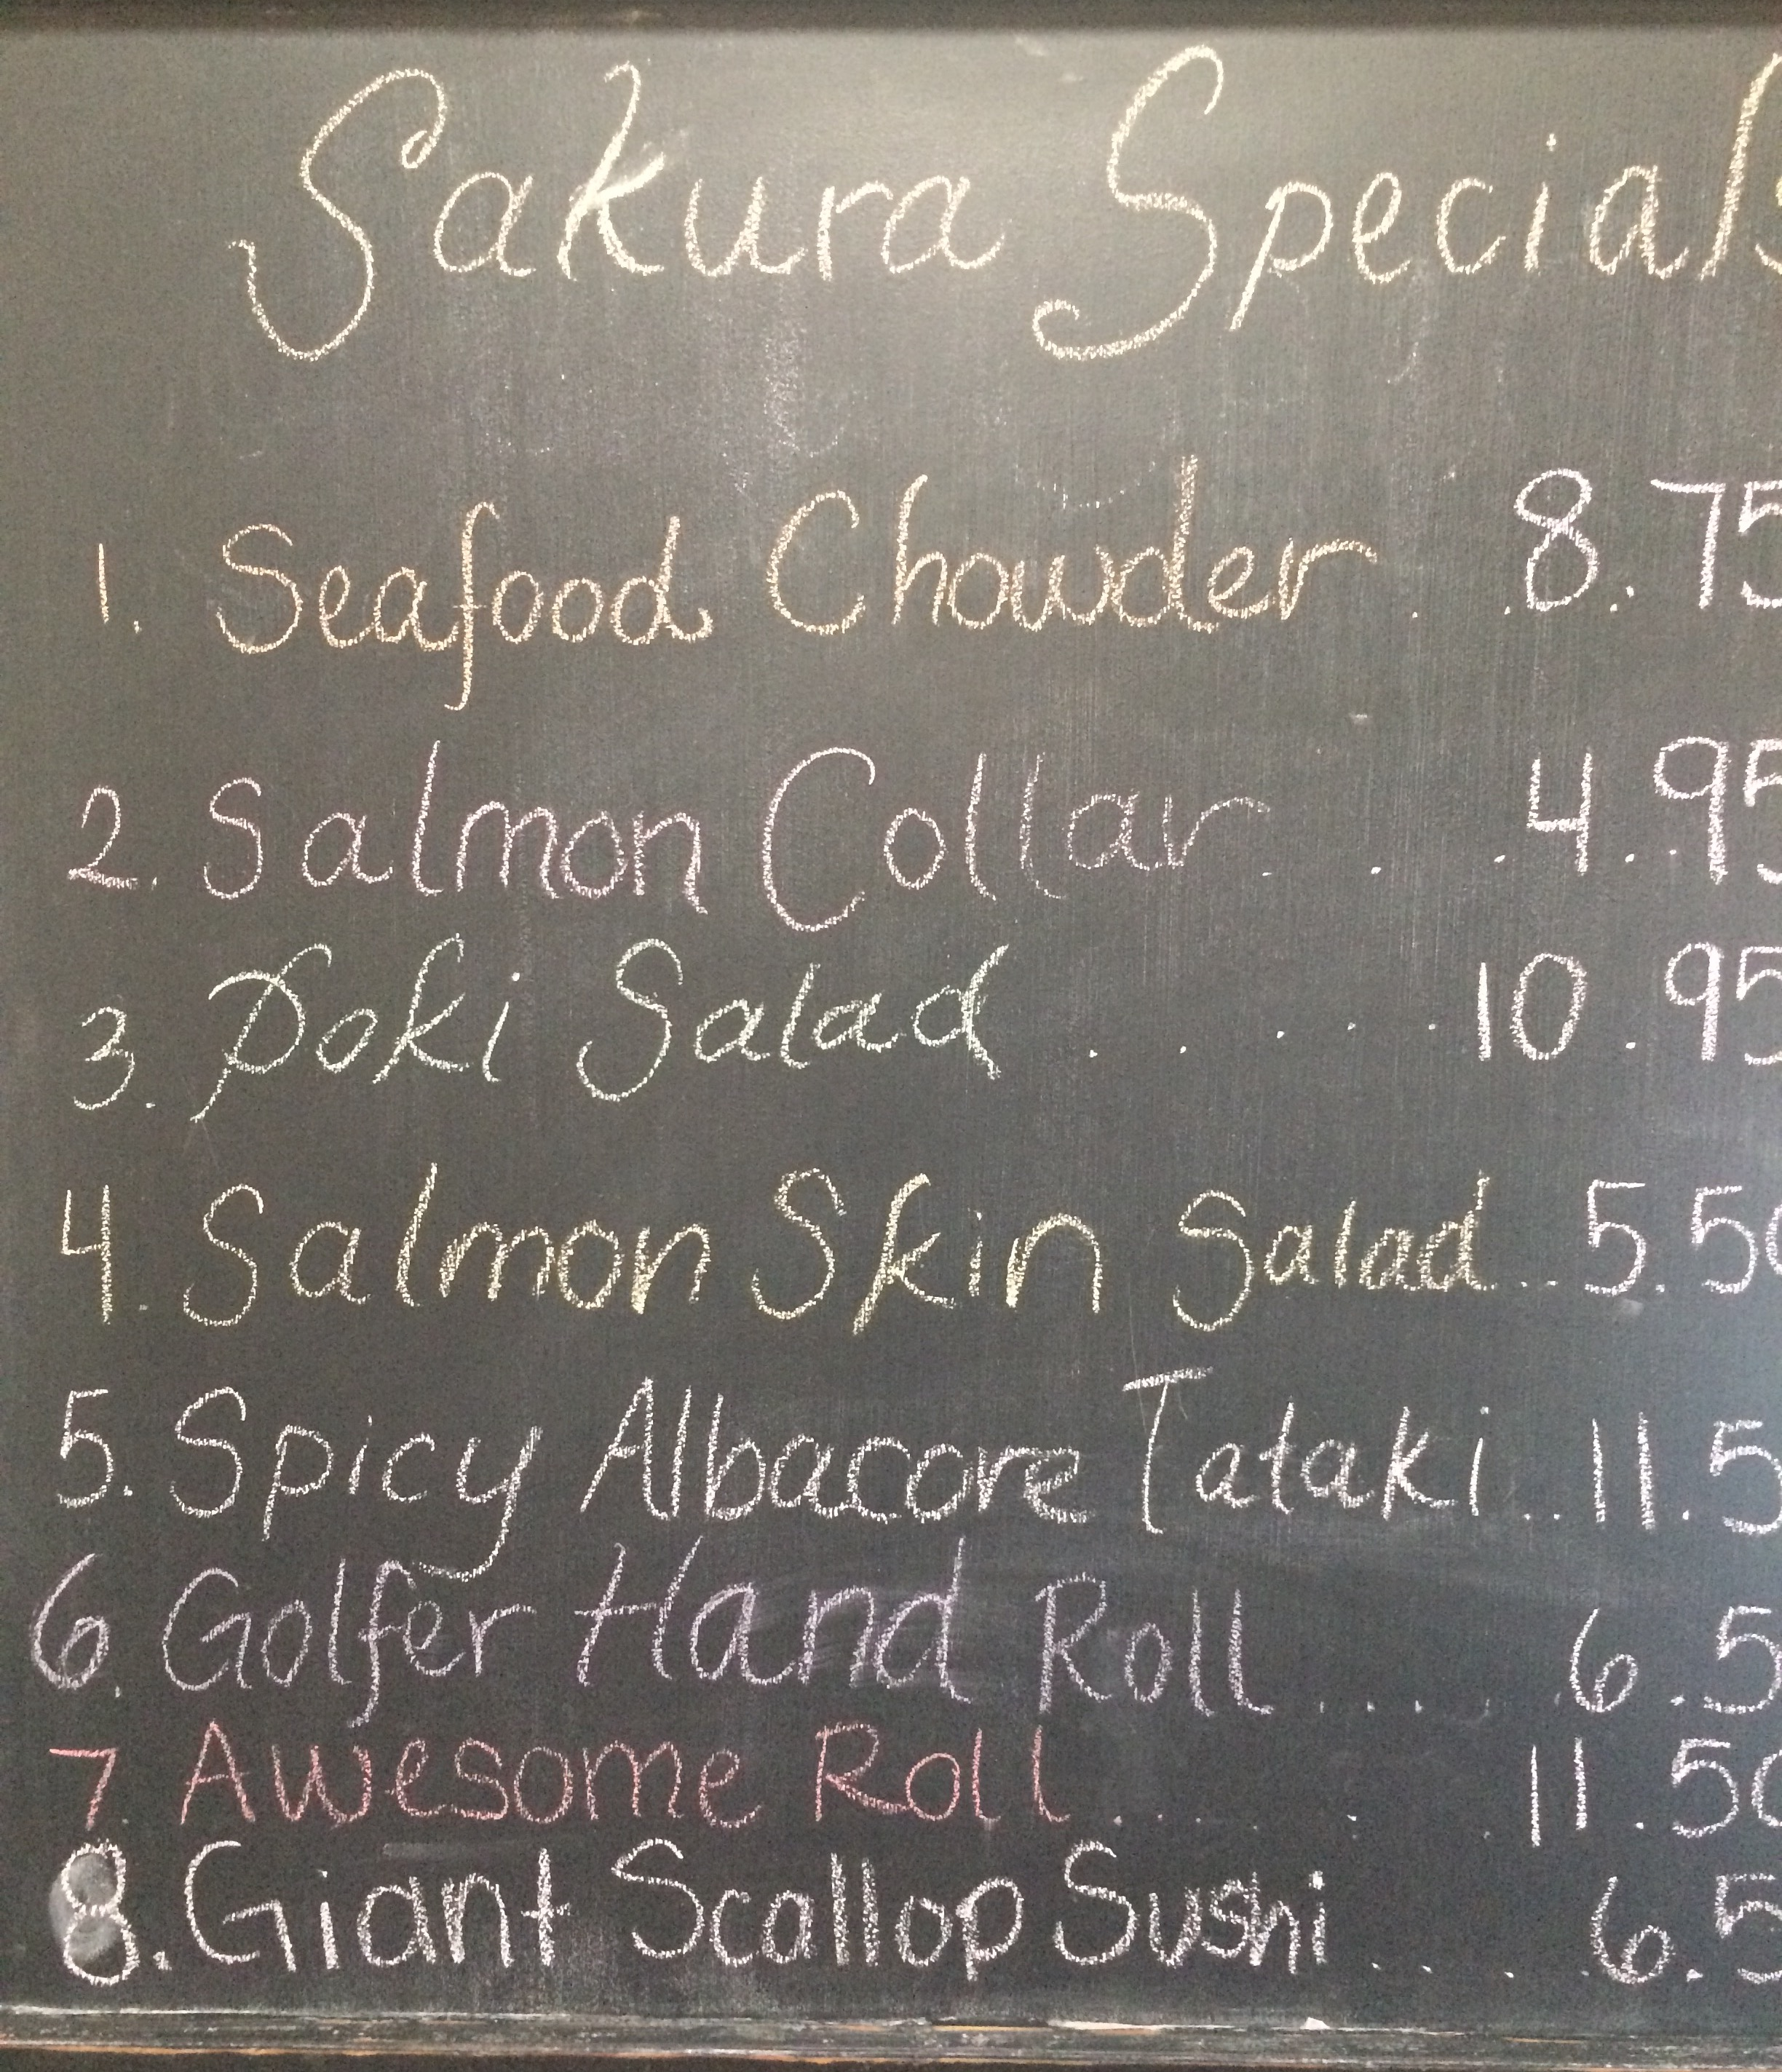 Daily Chef Specials